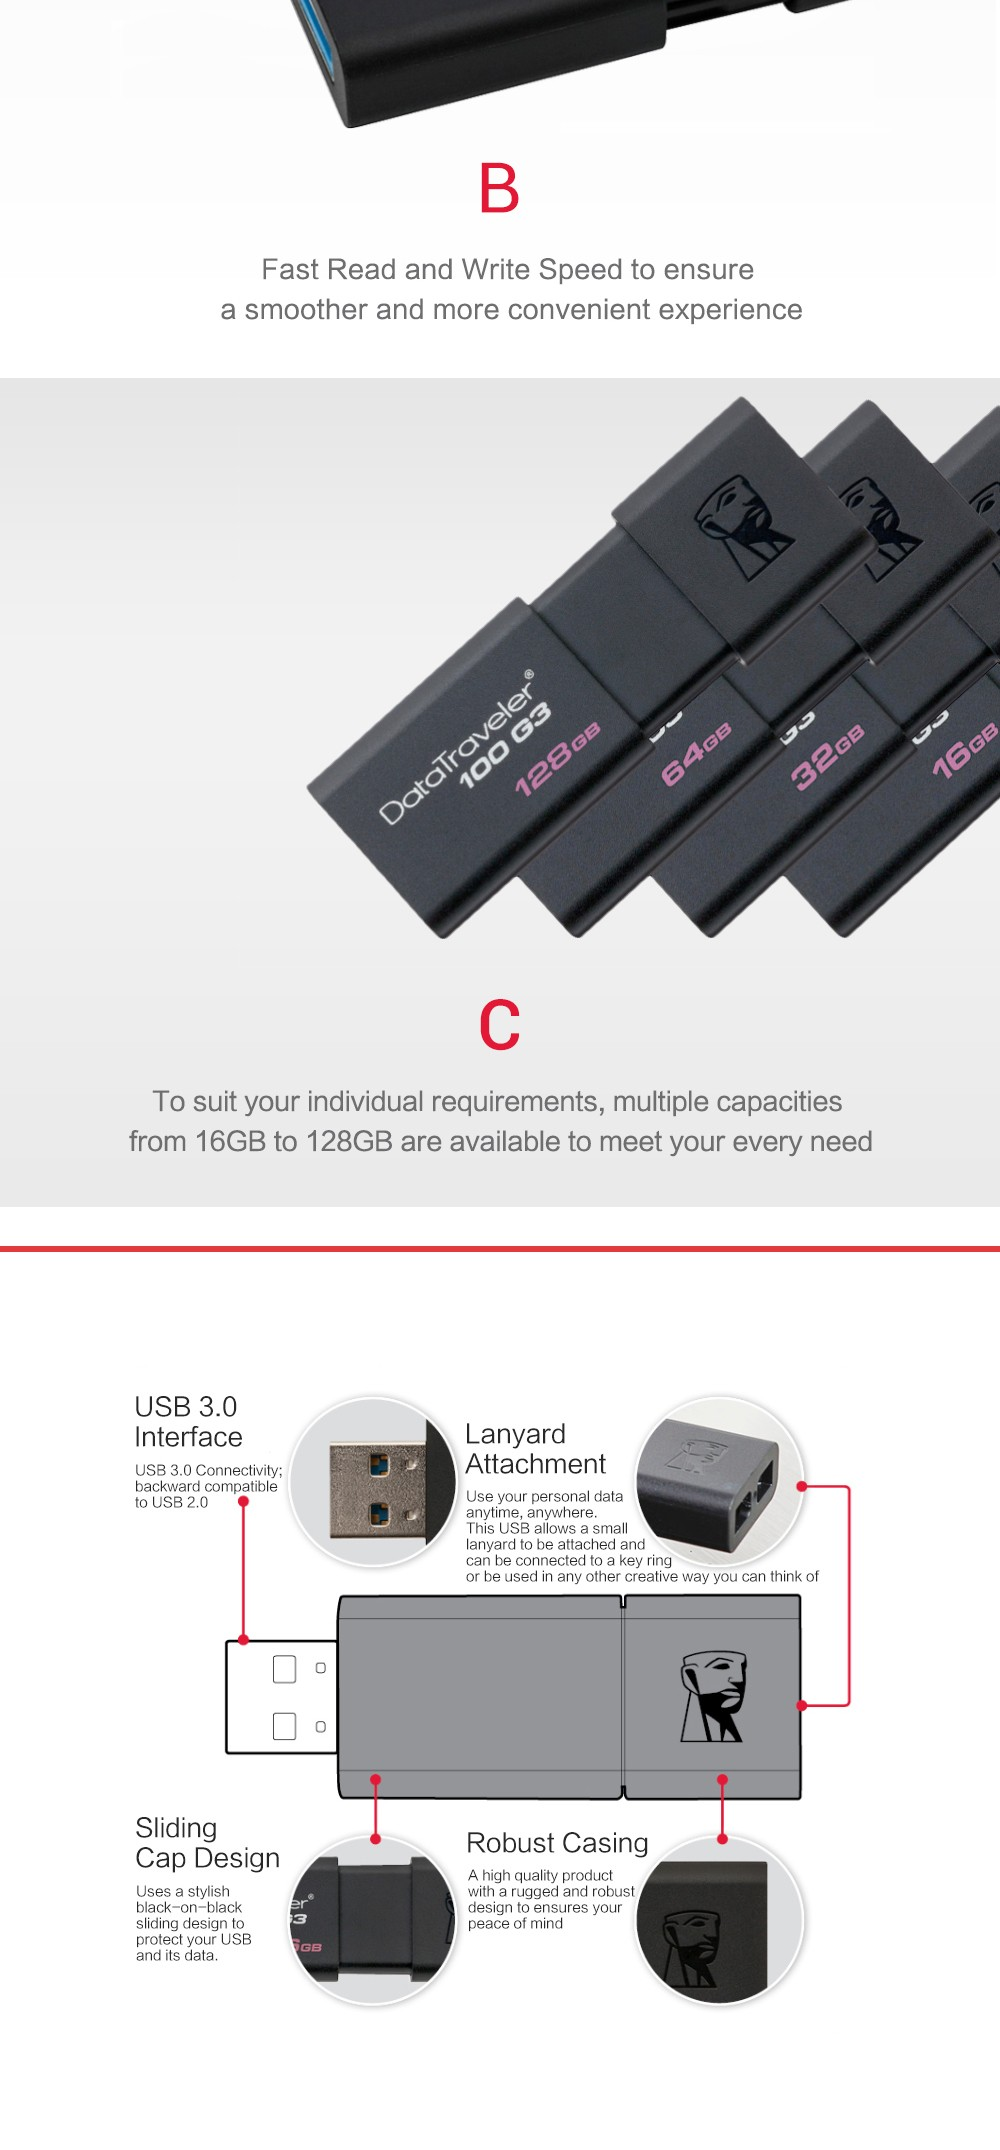 Kingston USB Flash Drives 8GB 16GB 32GB 64GB 128GB USB 3.0 Pen Drive high speed PenDrives DT100G3 7